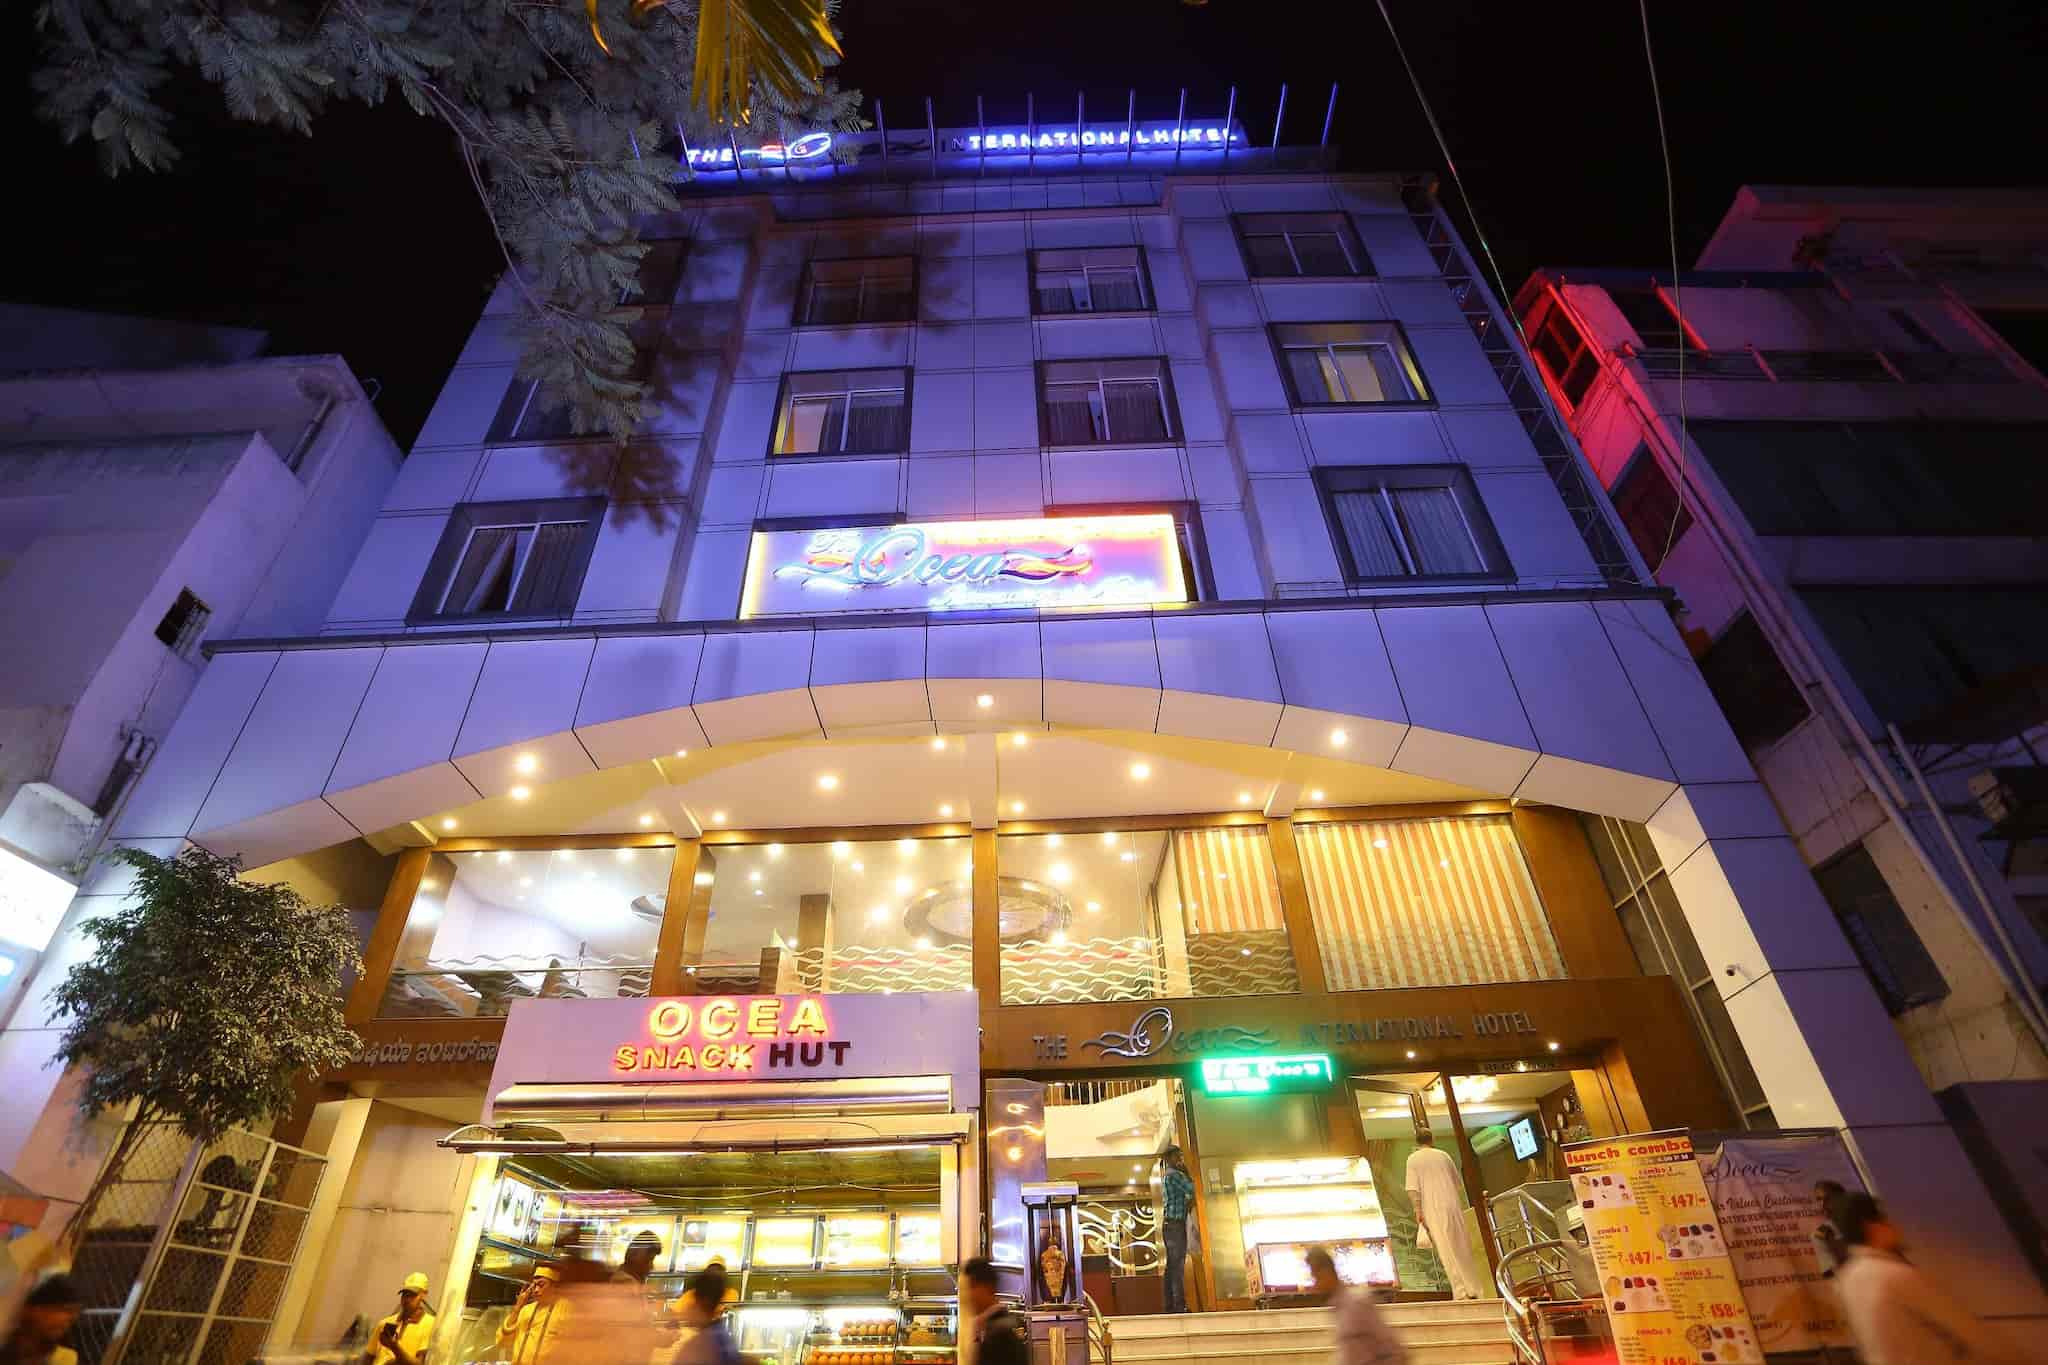 The Ocea International Hotel Photos Brigade Road Bangalore Pictures Images Gallery Justdial